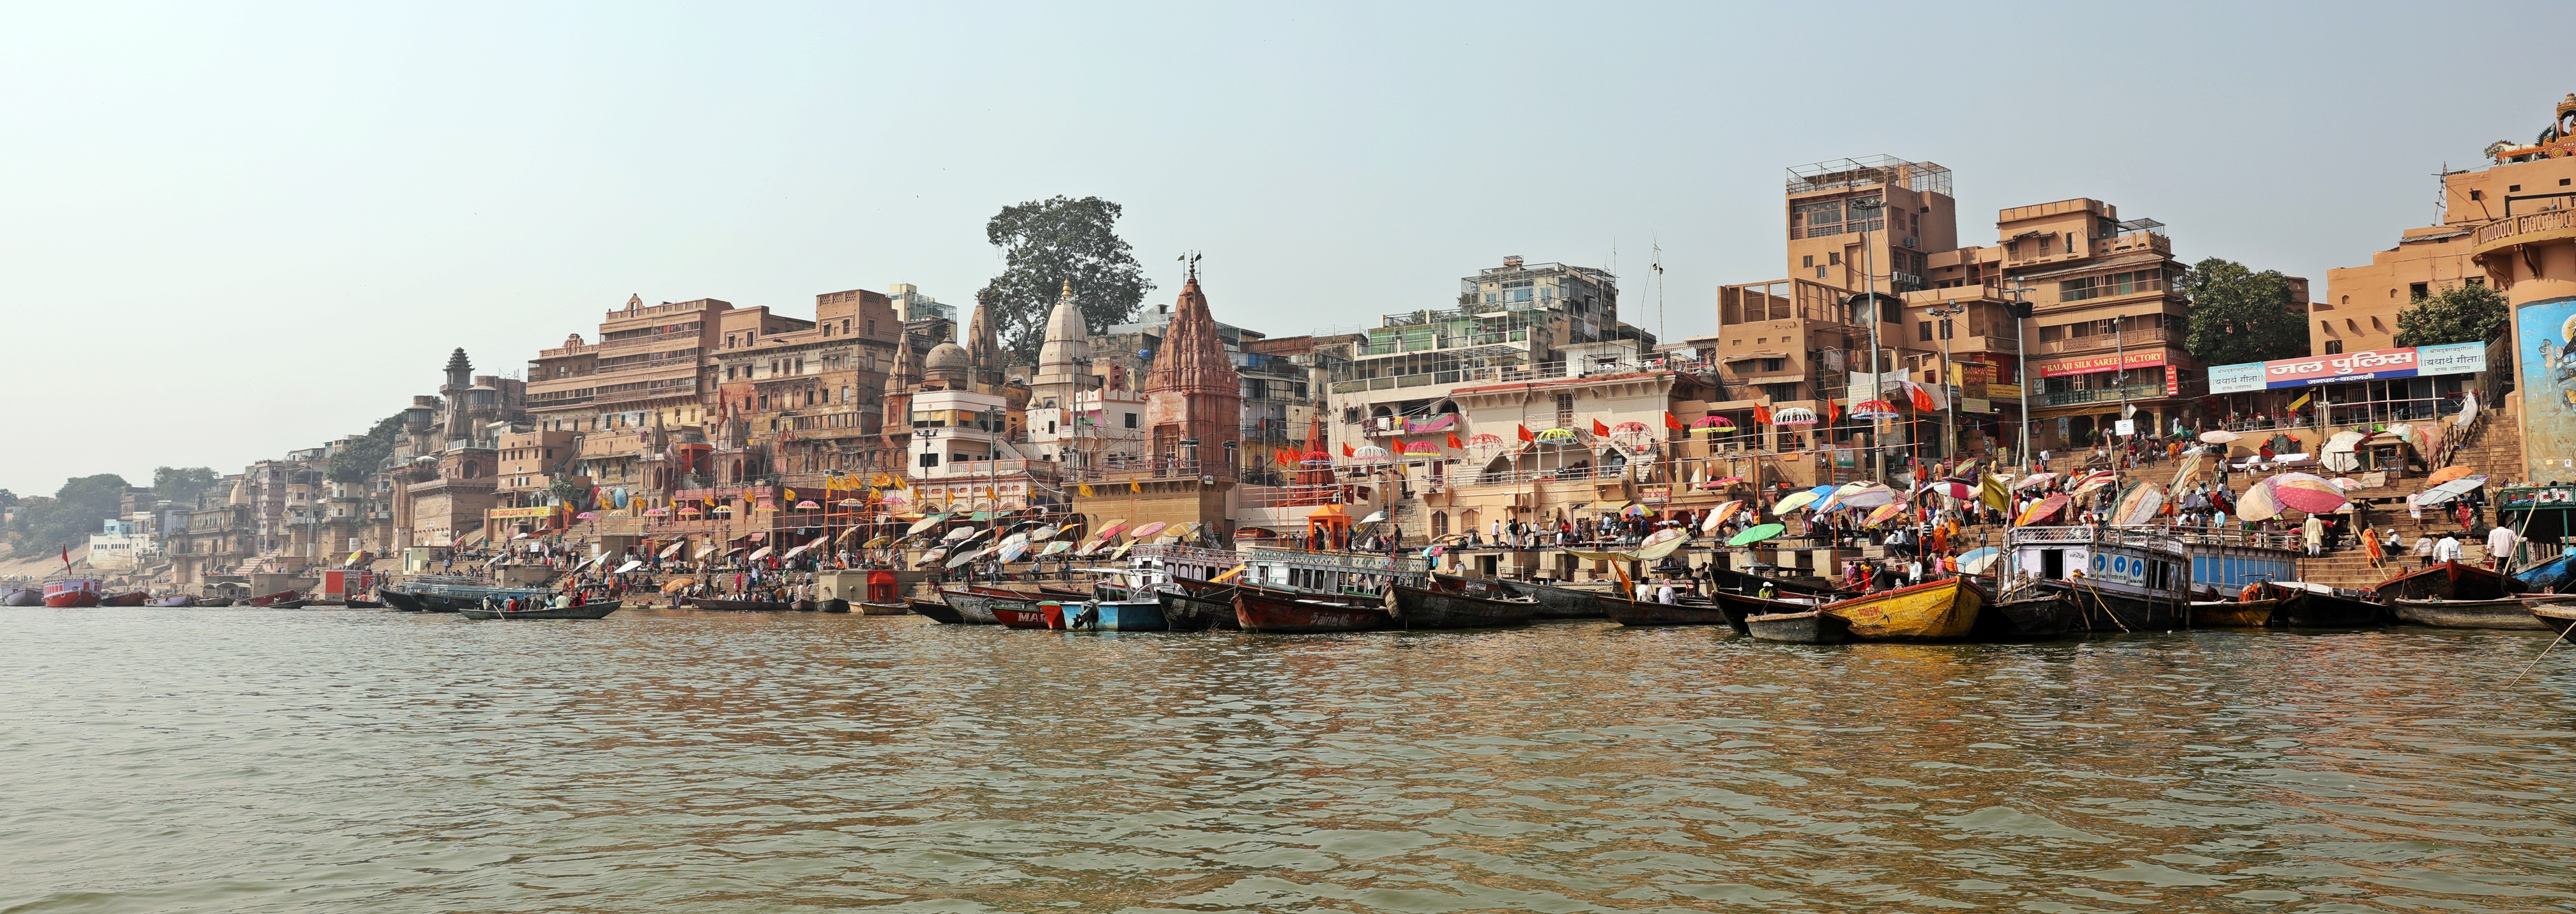 Ganges River bank in Varanasi